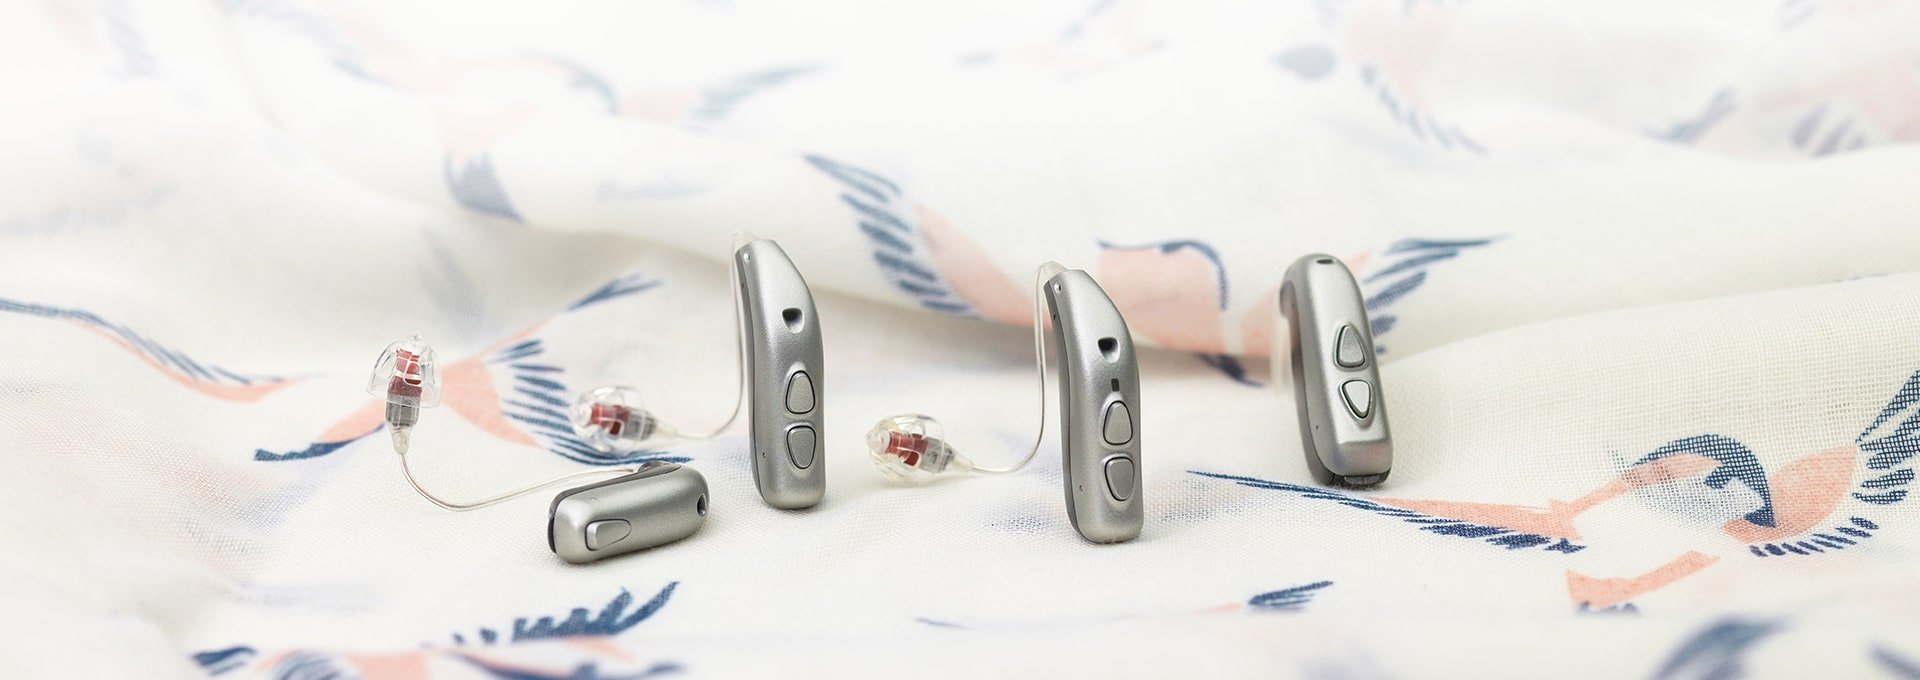 The complete Bernafon Viron hearing aid family with BTE, miniRITE, miniRITE T and miniRITE T R on a scarf with bird prints.